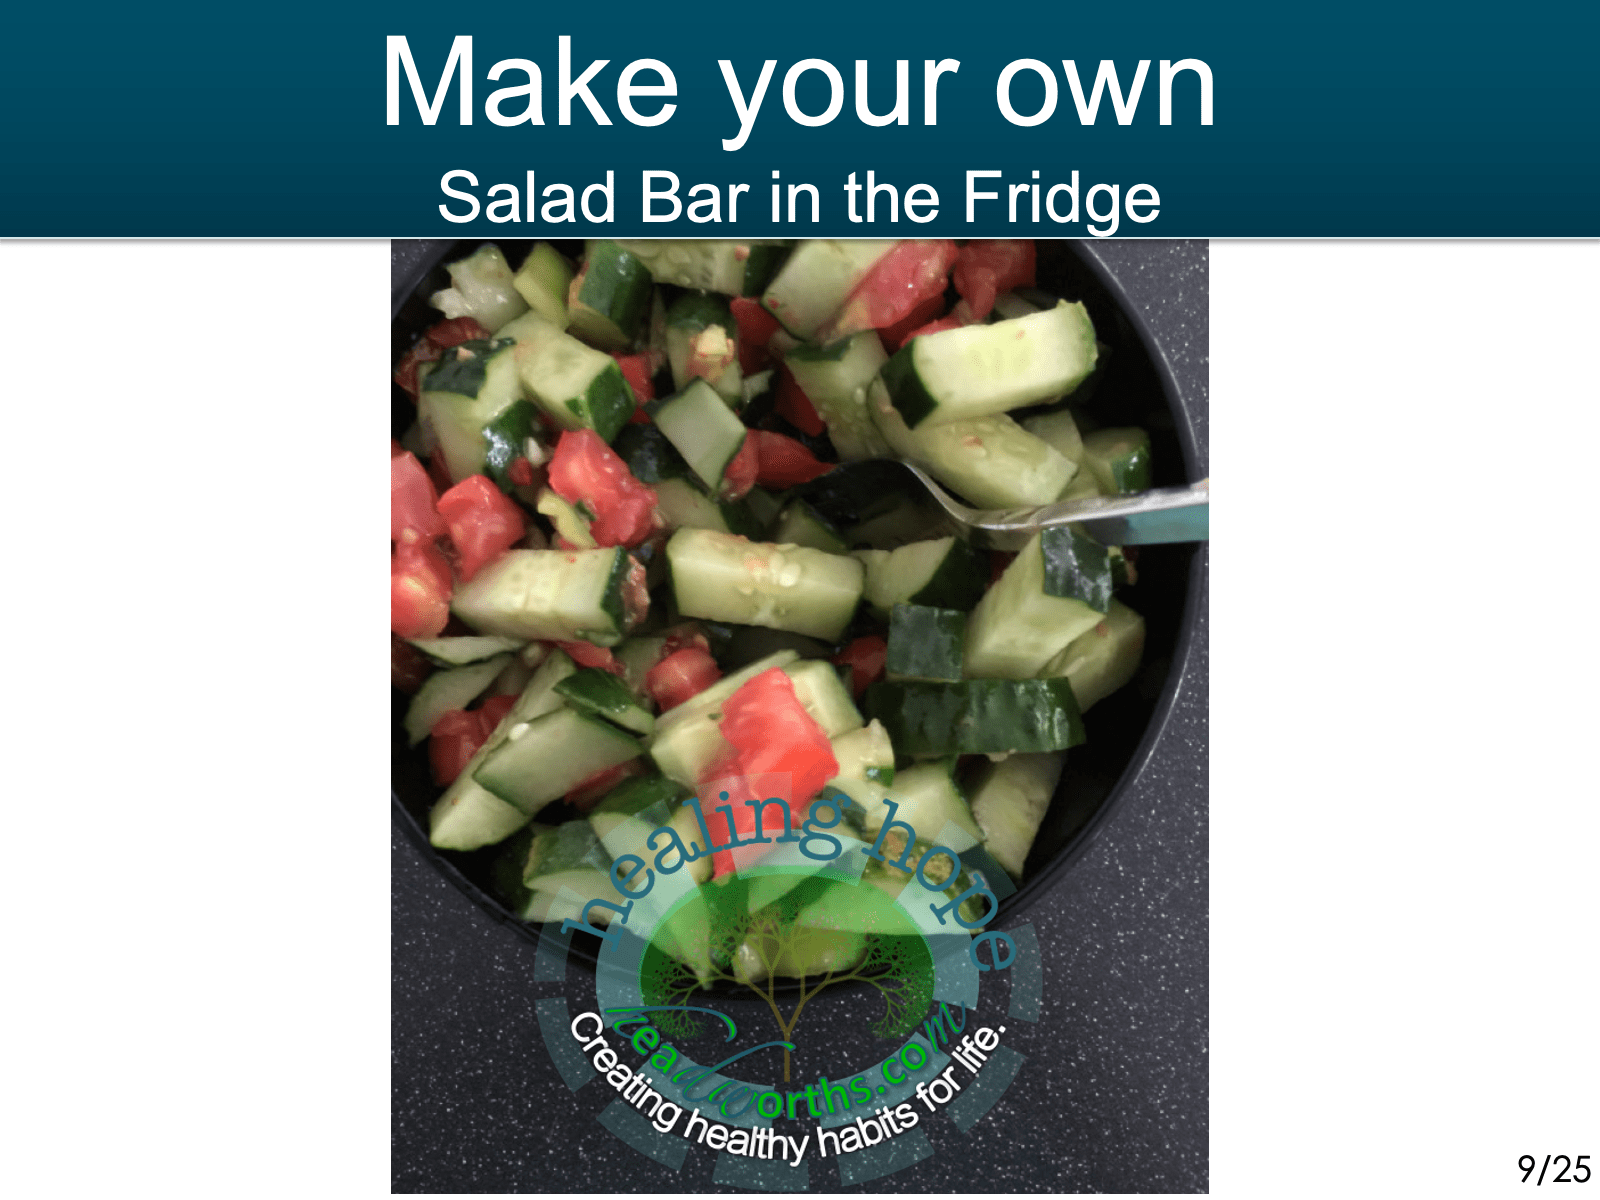 -make your own Salad bar in the fridge